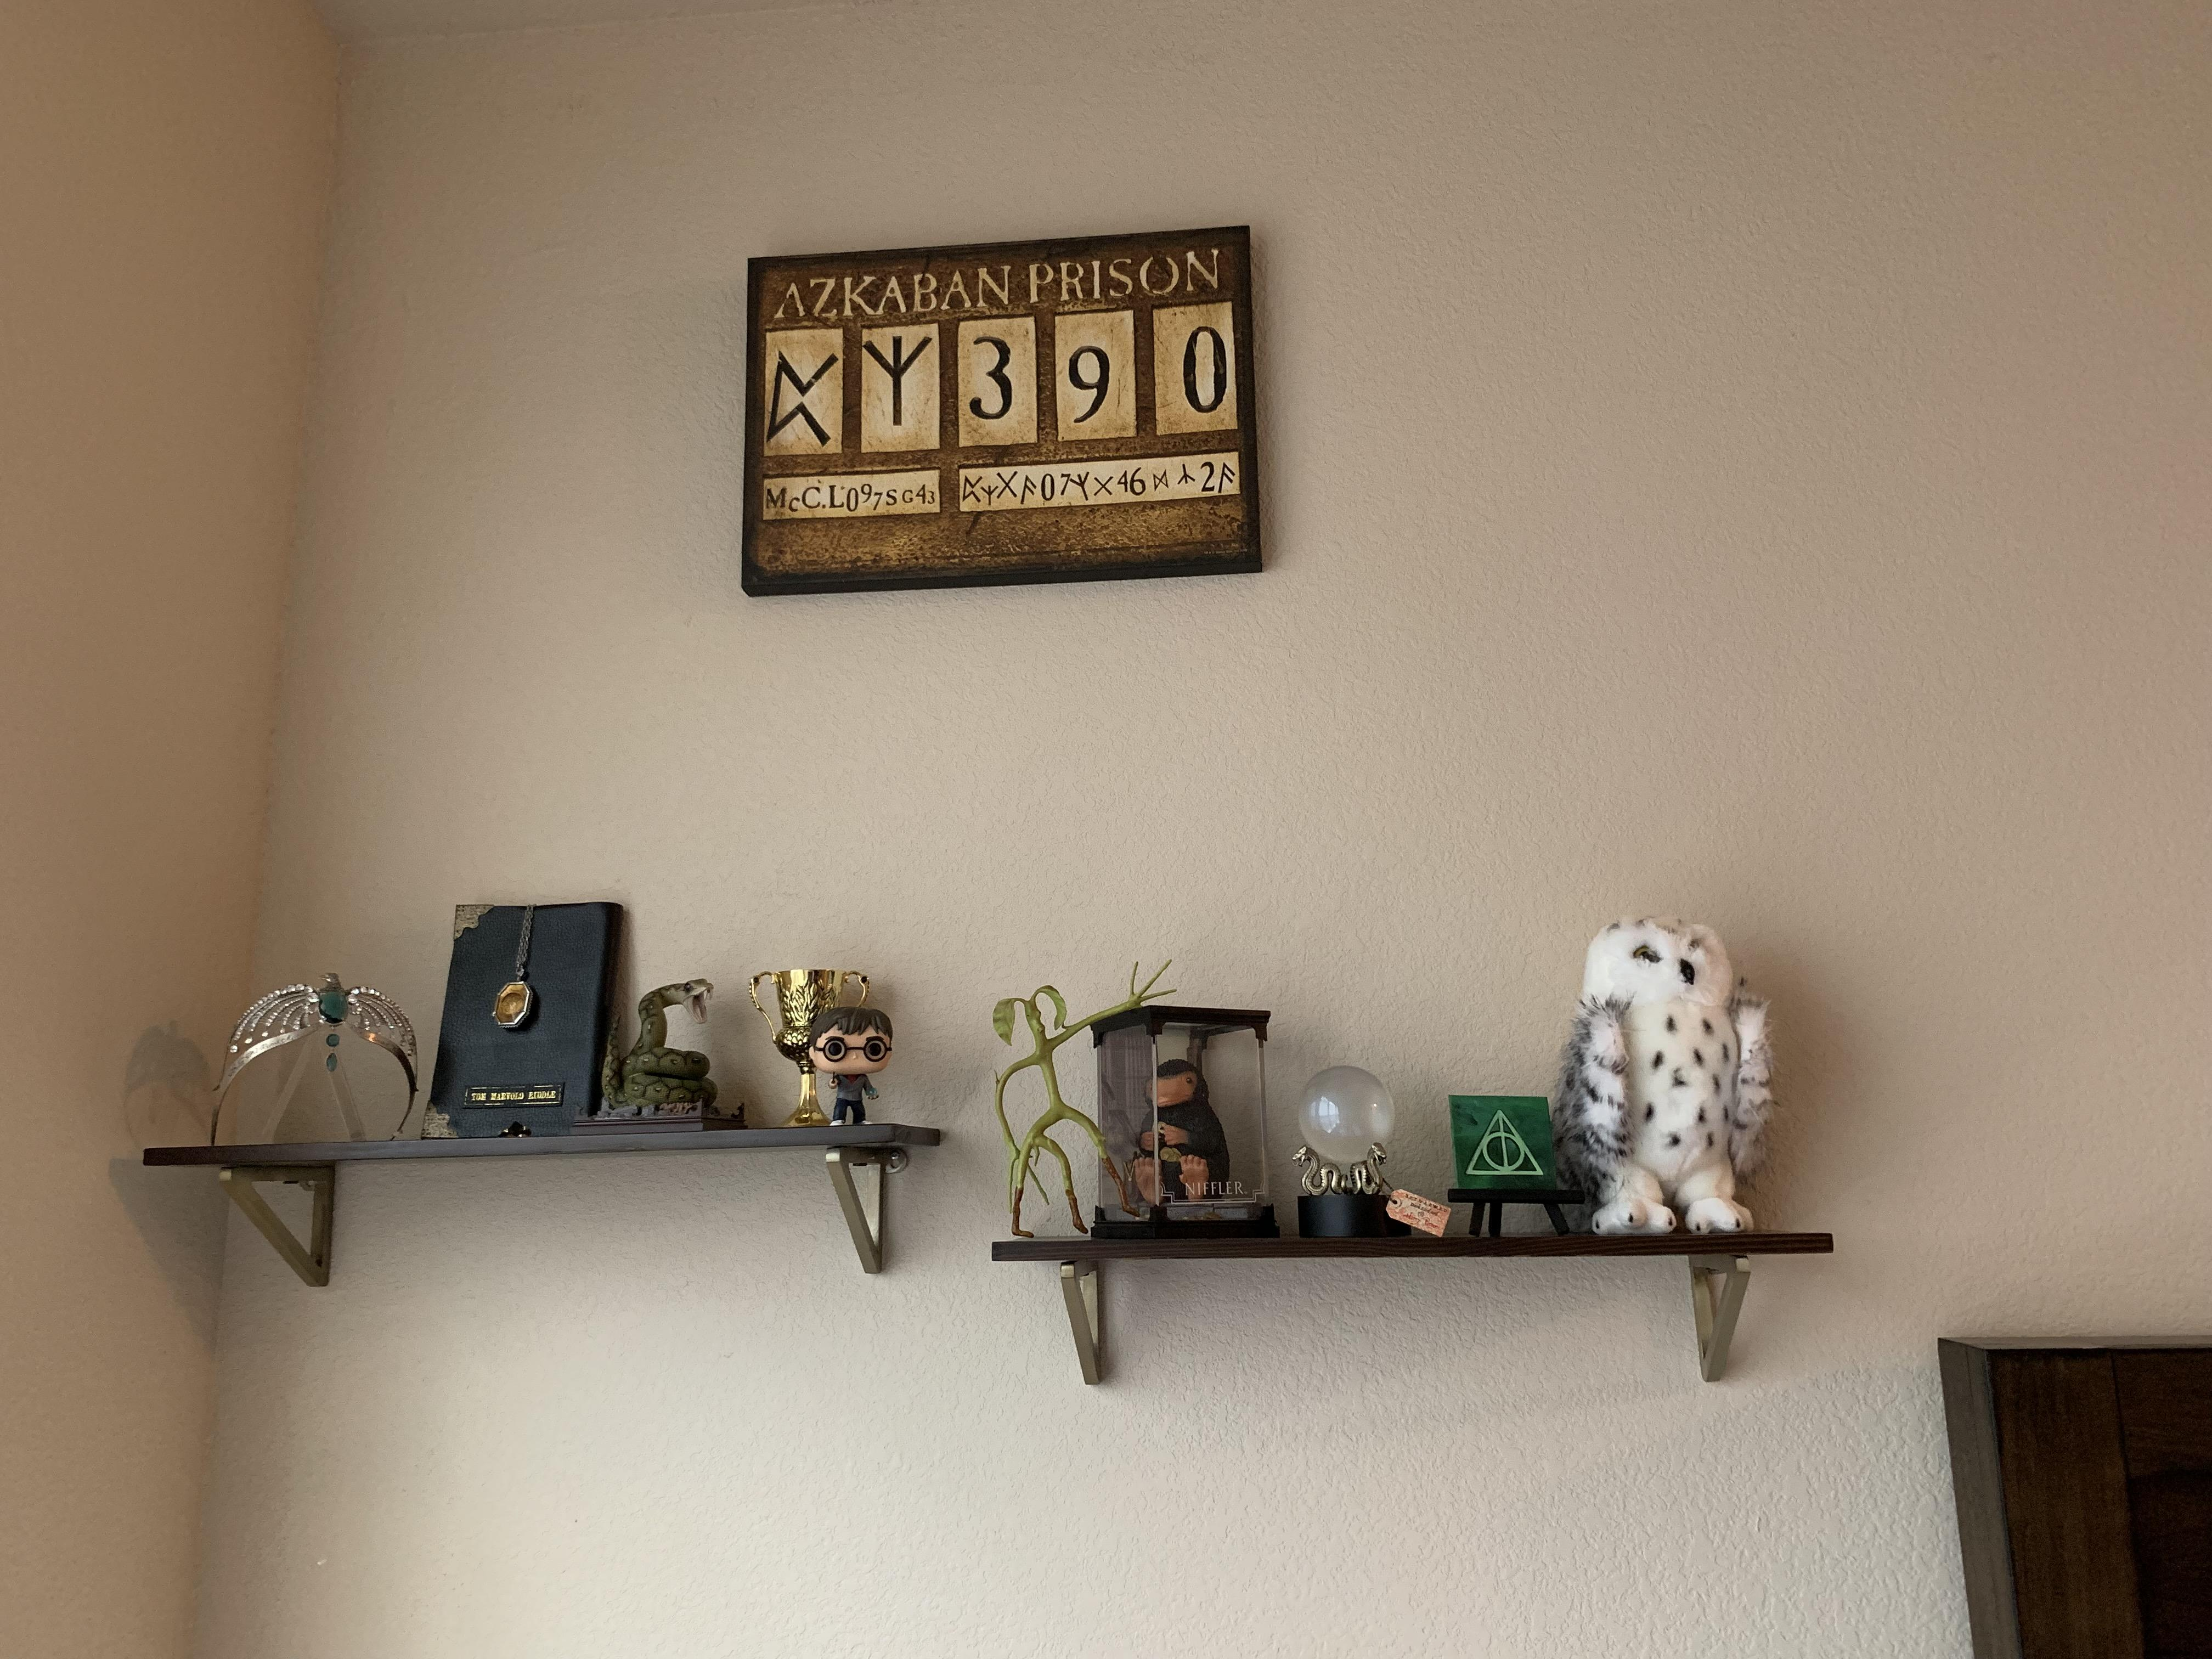 Put Up My New Display Shelves Today! The Harry Potter Themed